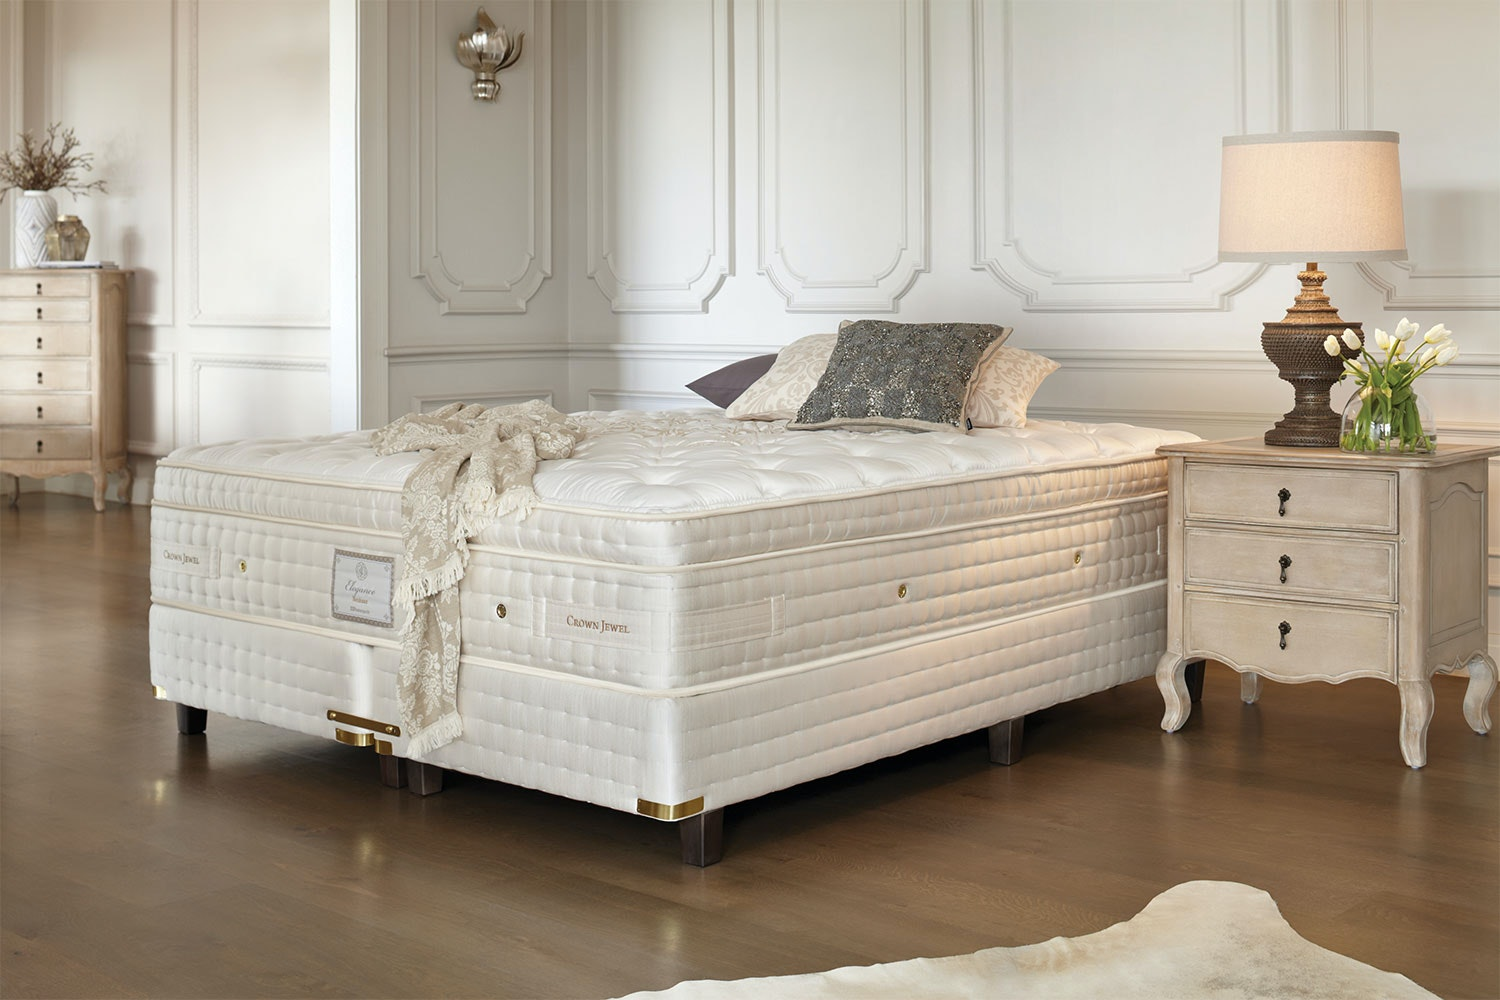 Bordeaux Plush Super King Bed by Crown Jewel